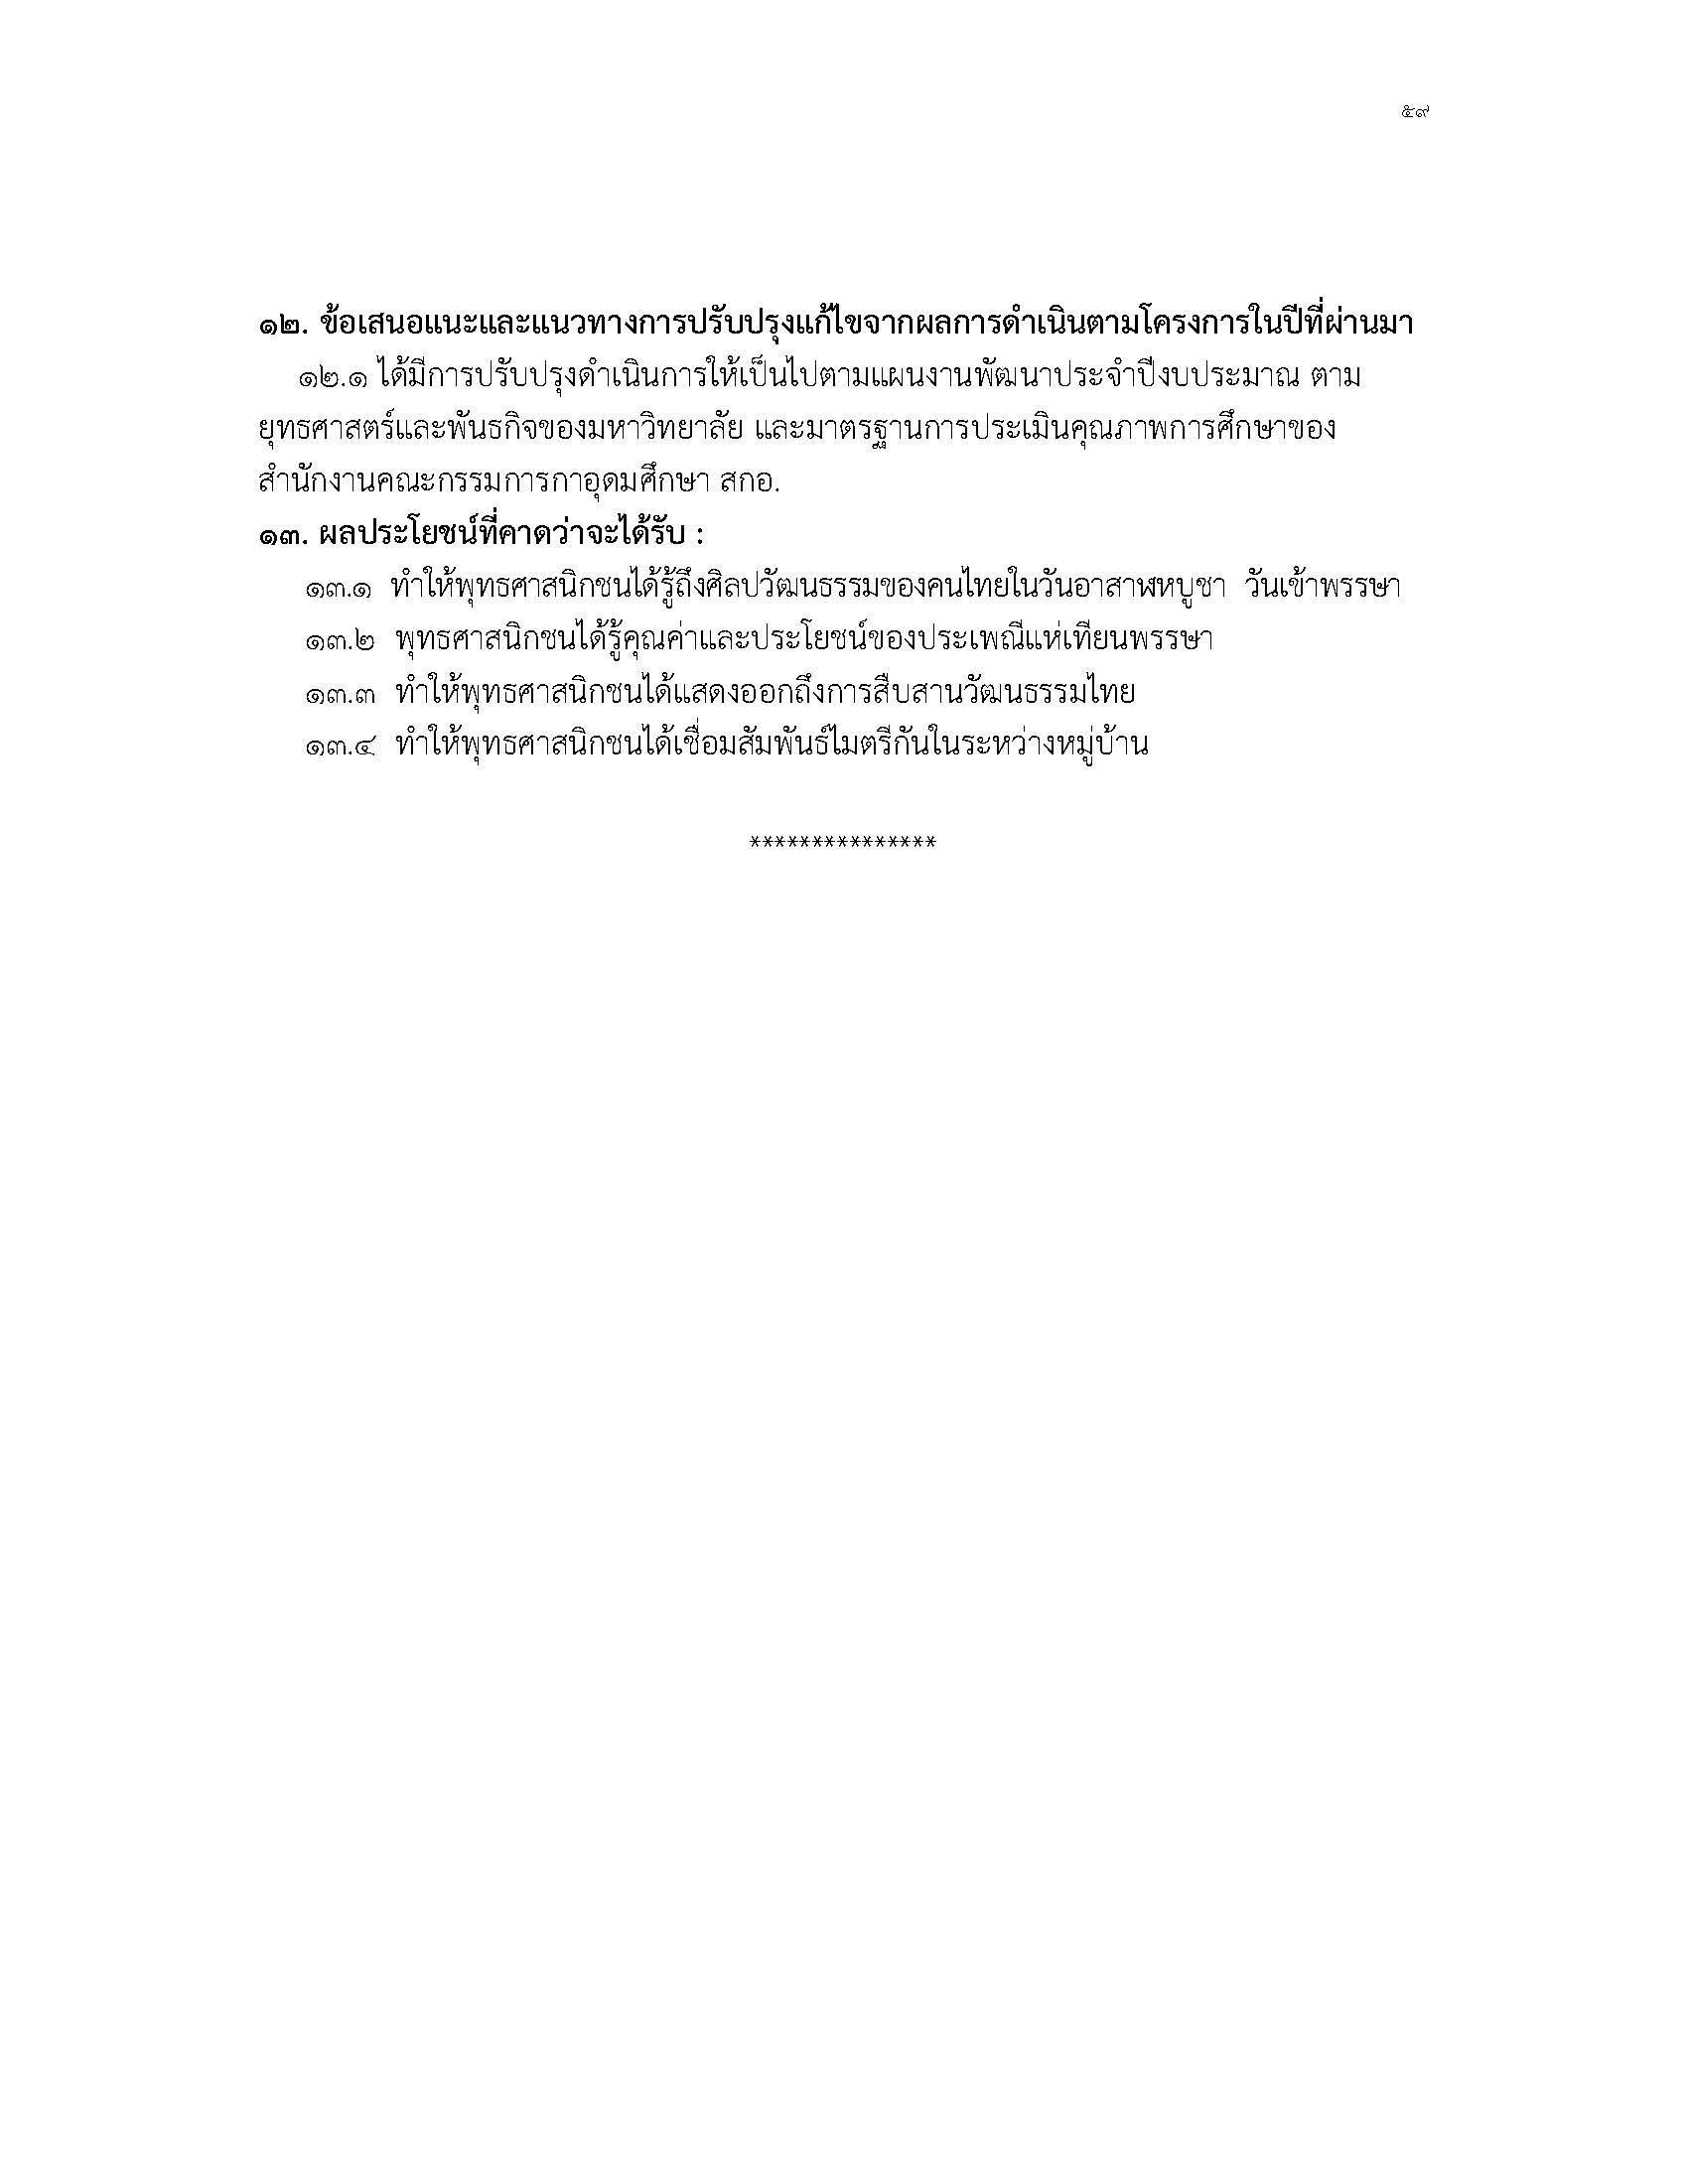 AA_Page_62